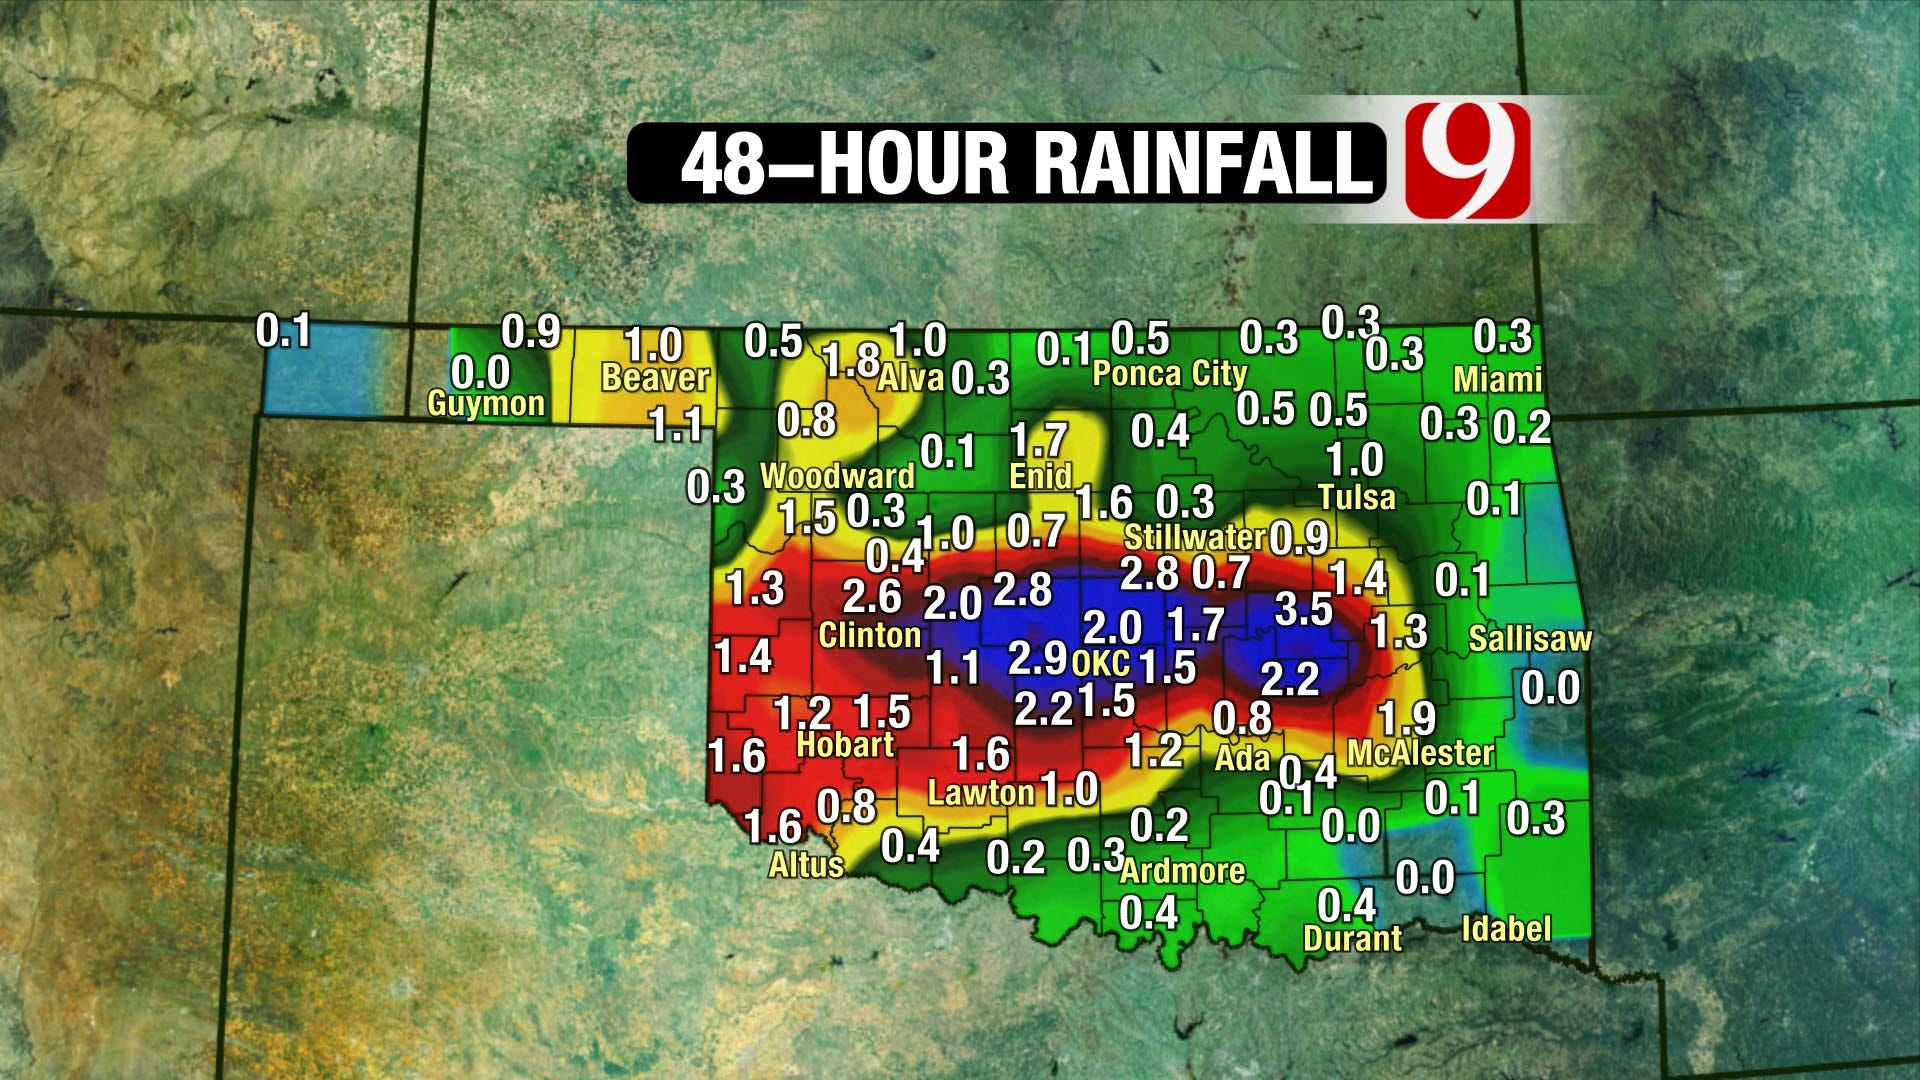 Rainfall is Up, Allergies are Down